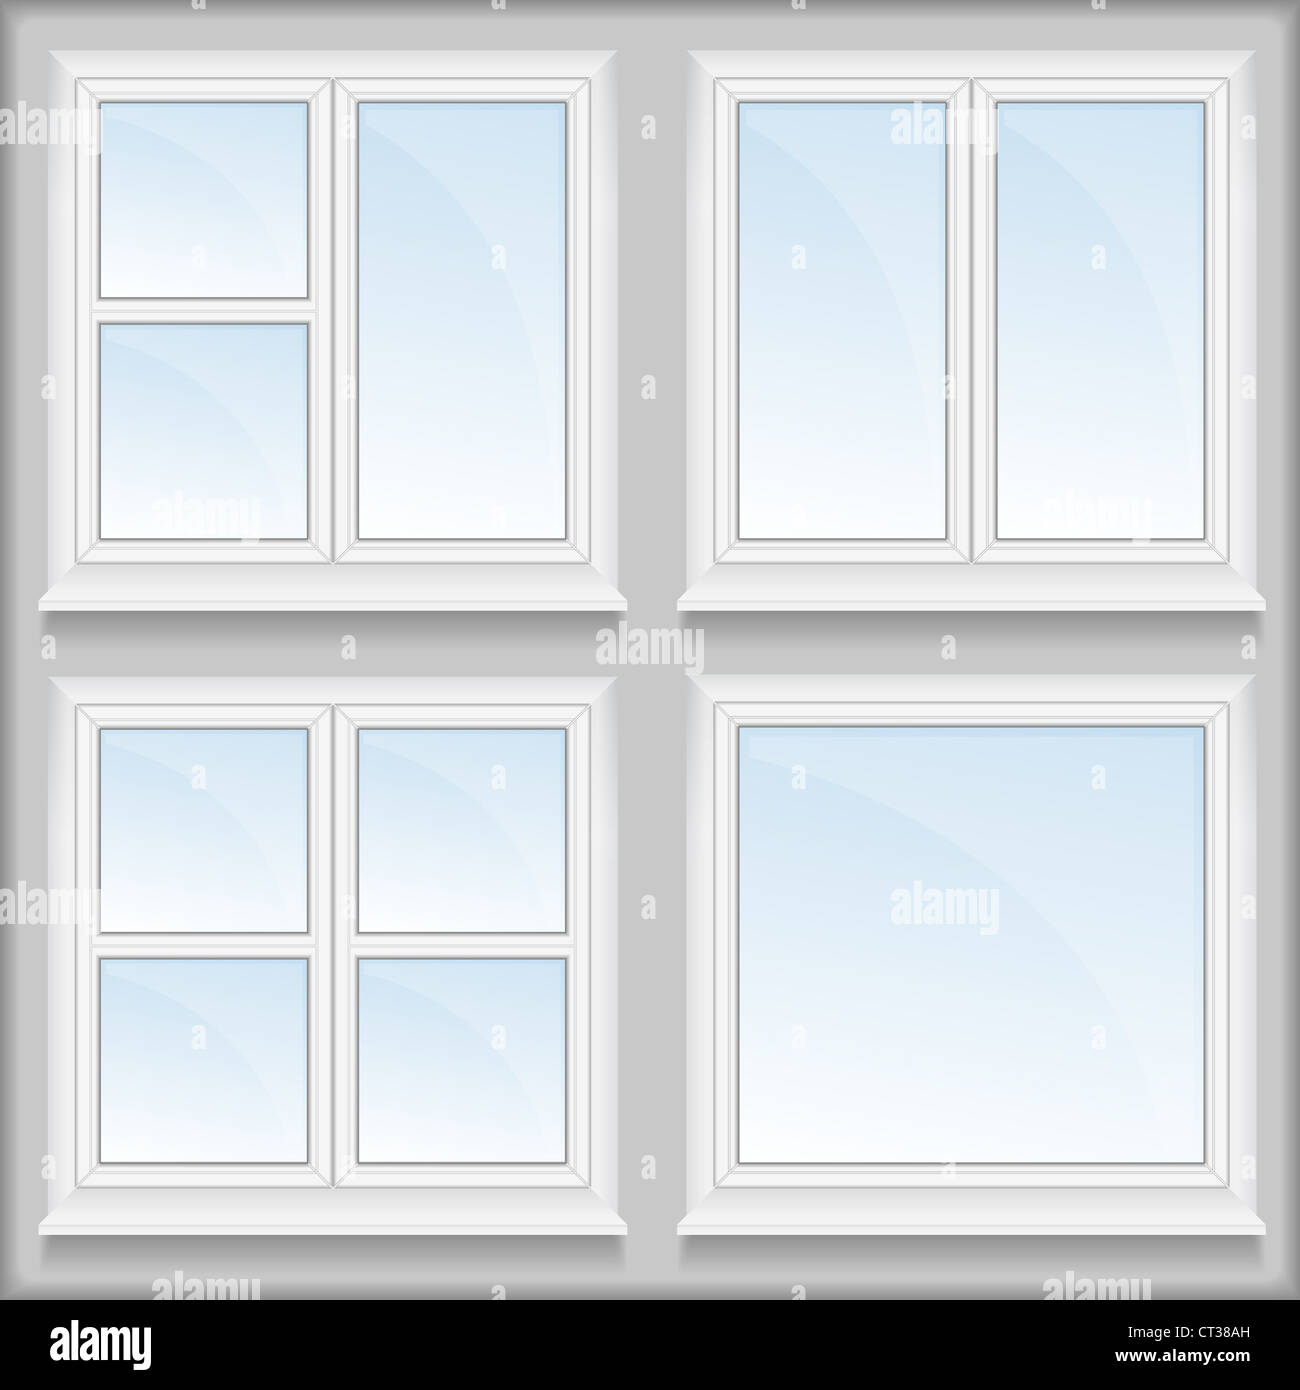 Windows with sills - Stock Image